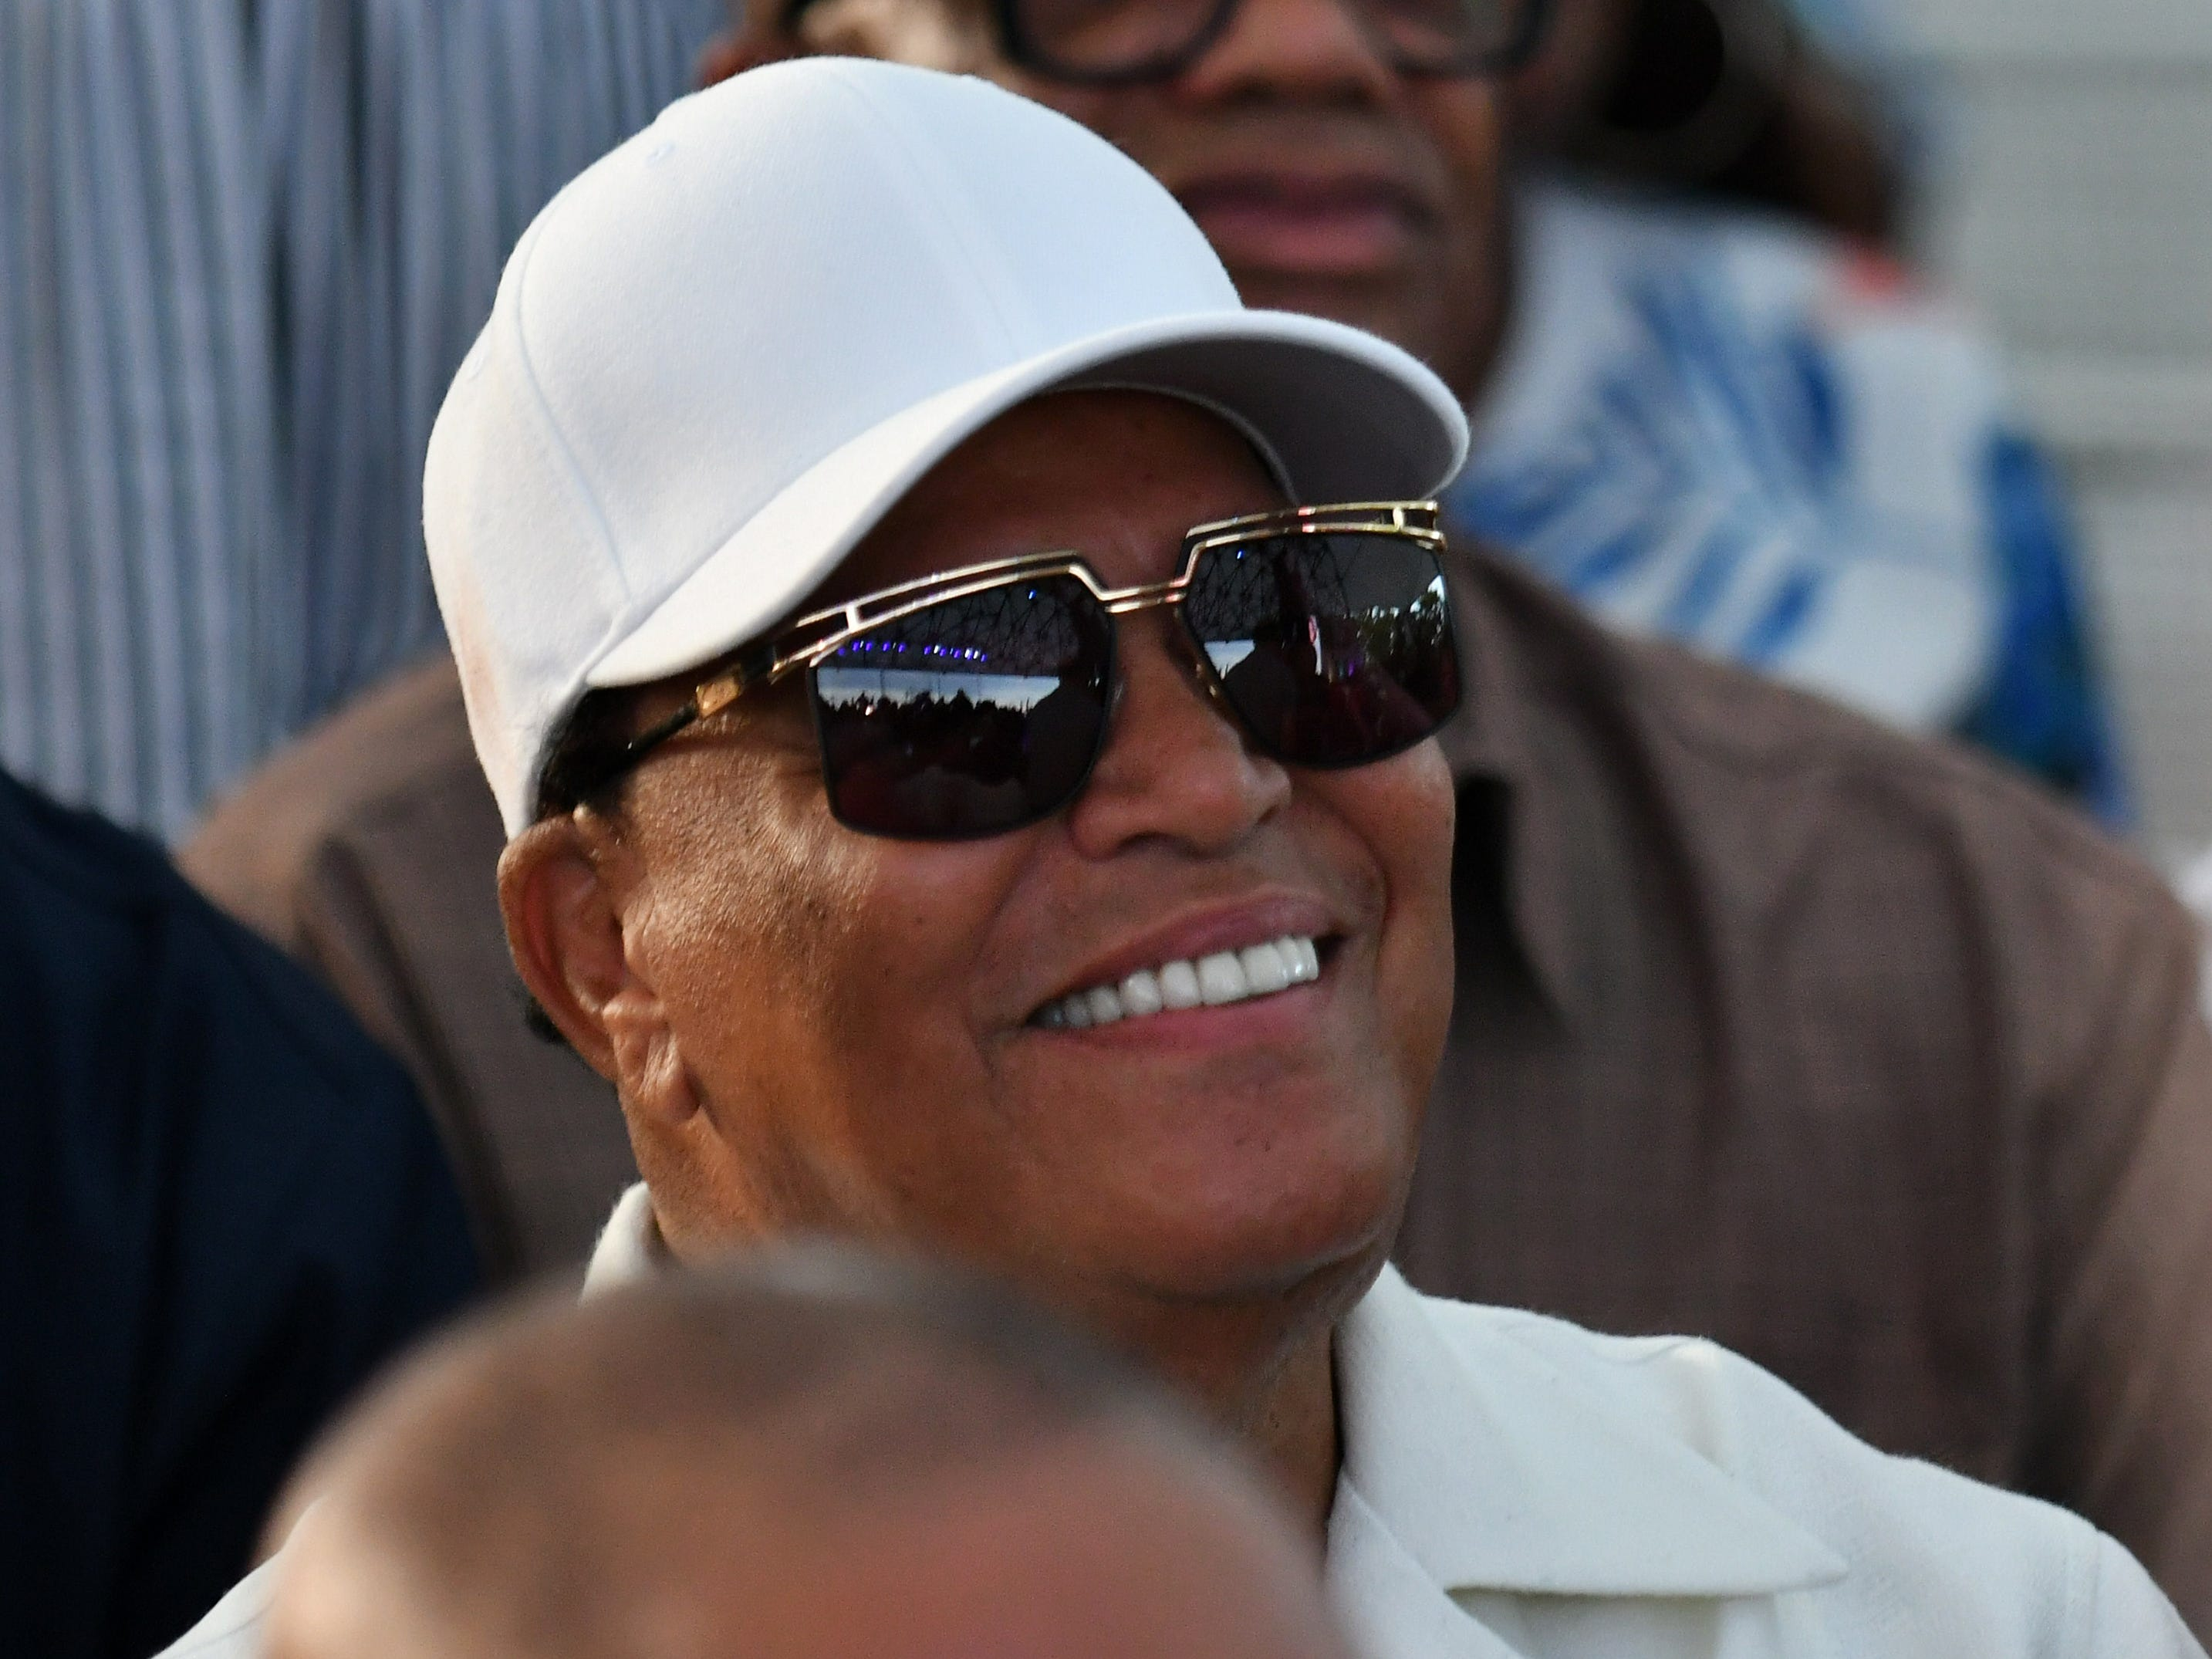 Leader of the Nation of Islam Minister Louis Farrakhan is in attendance.